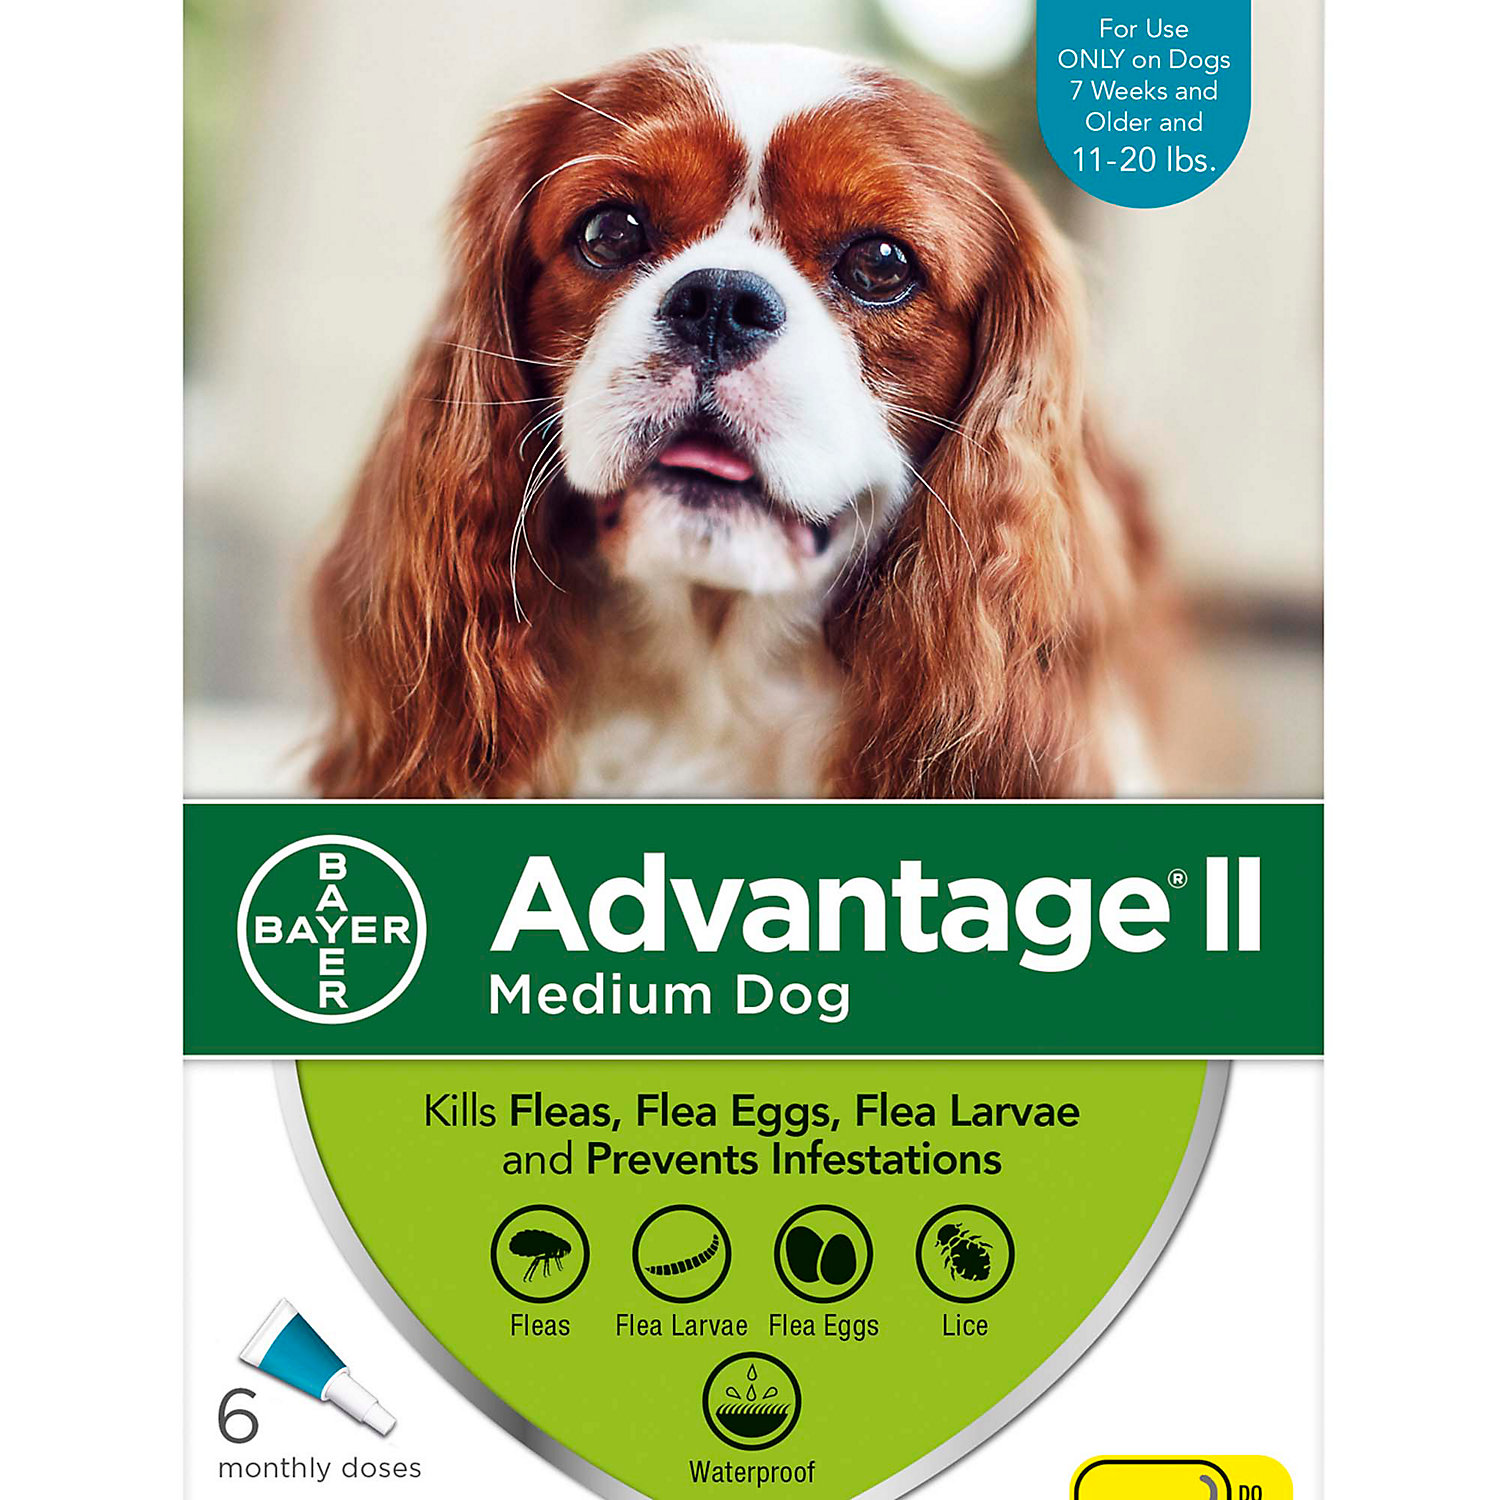 Advantage Ii Once A Month Topical Flea Treatment For Dogs Puppies For Medium Dogs 11 20 Lbs.